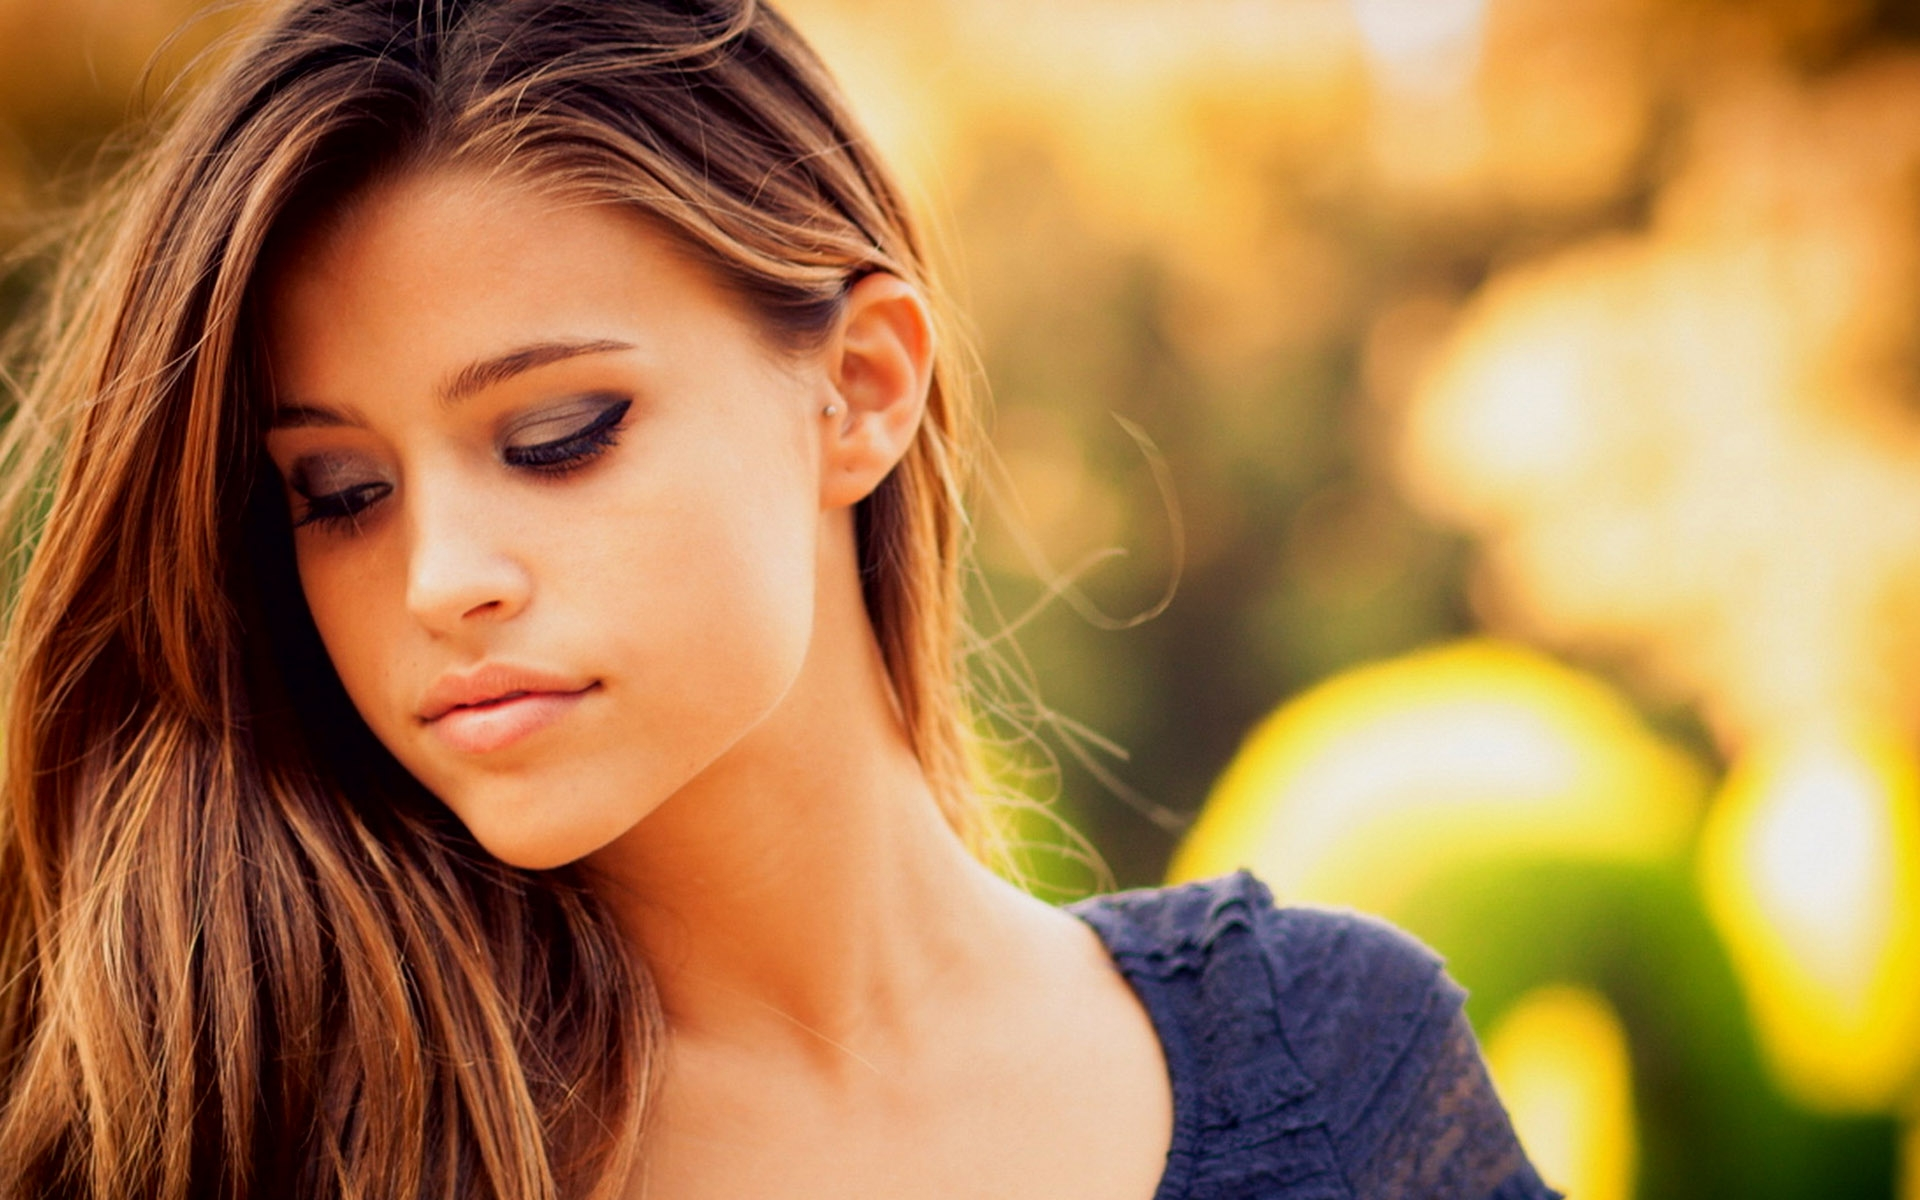 Beautiful Girls Wallpapers, Pictures, Images